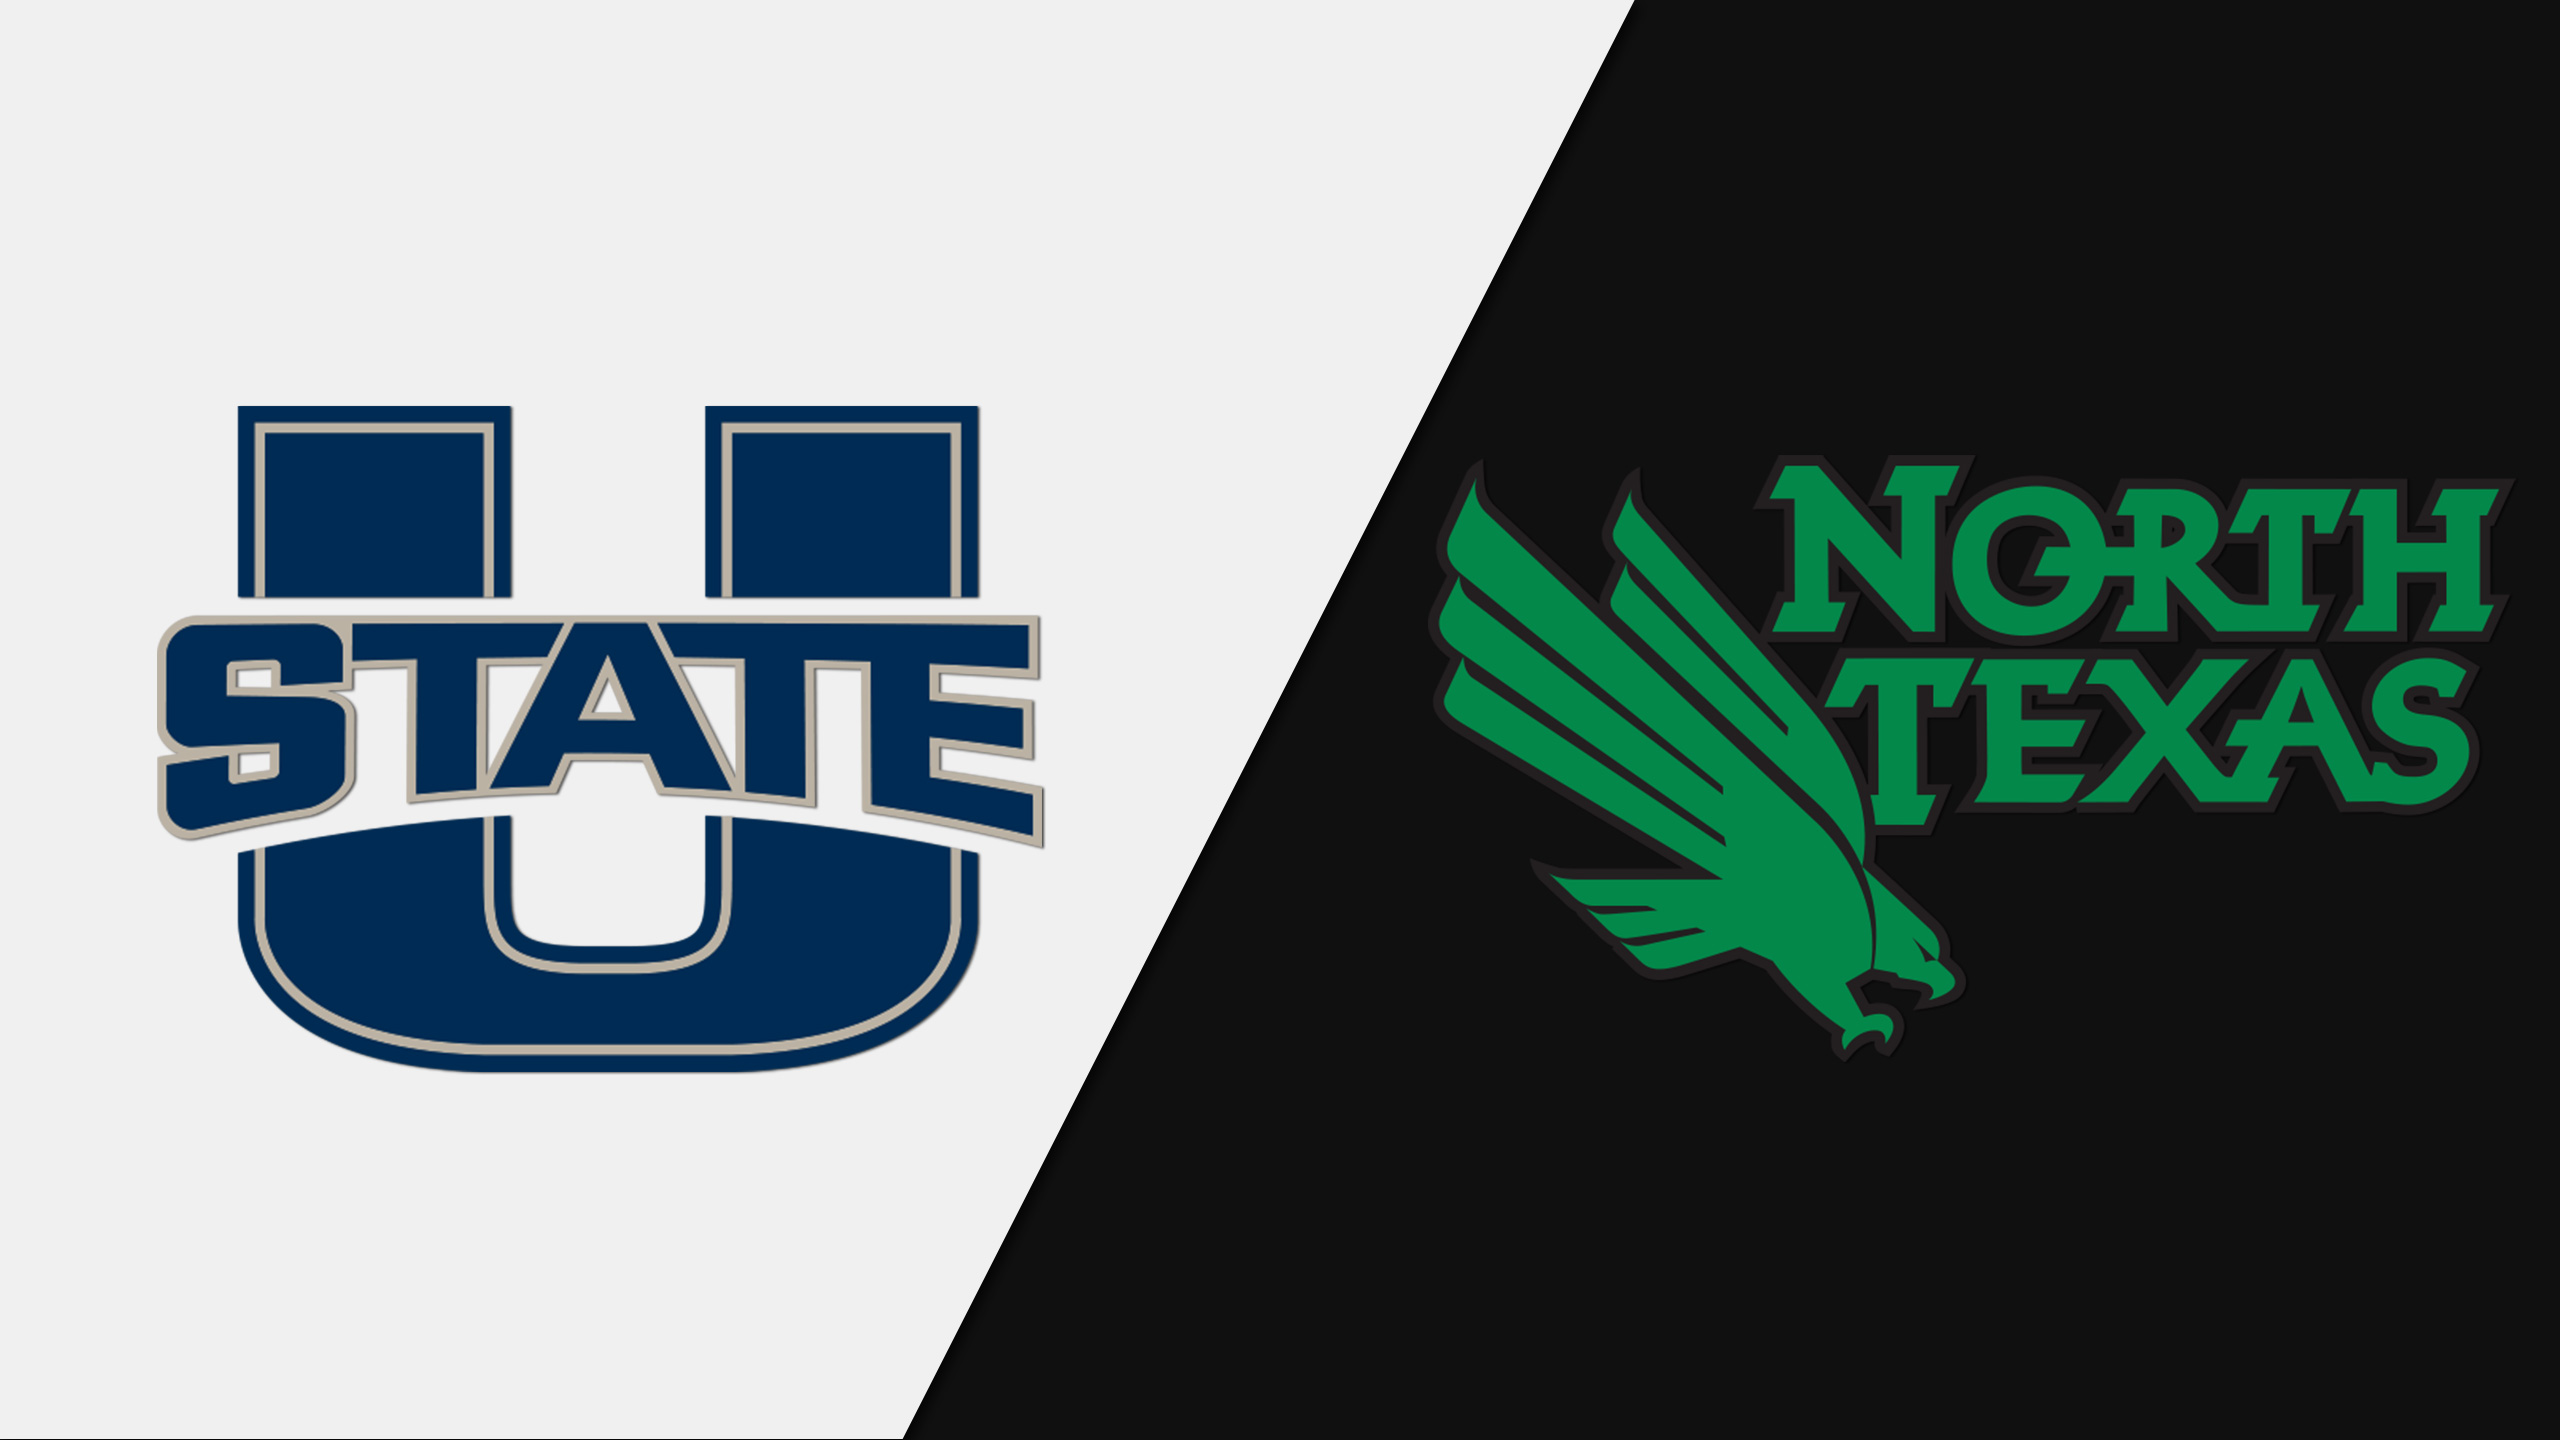 Utah State vs. North Texas (New Mexico Bowl) (re-air)